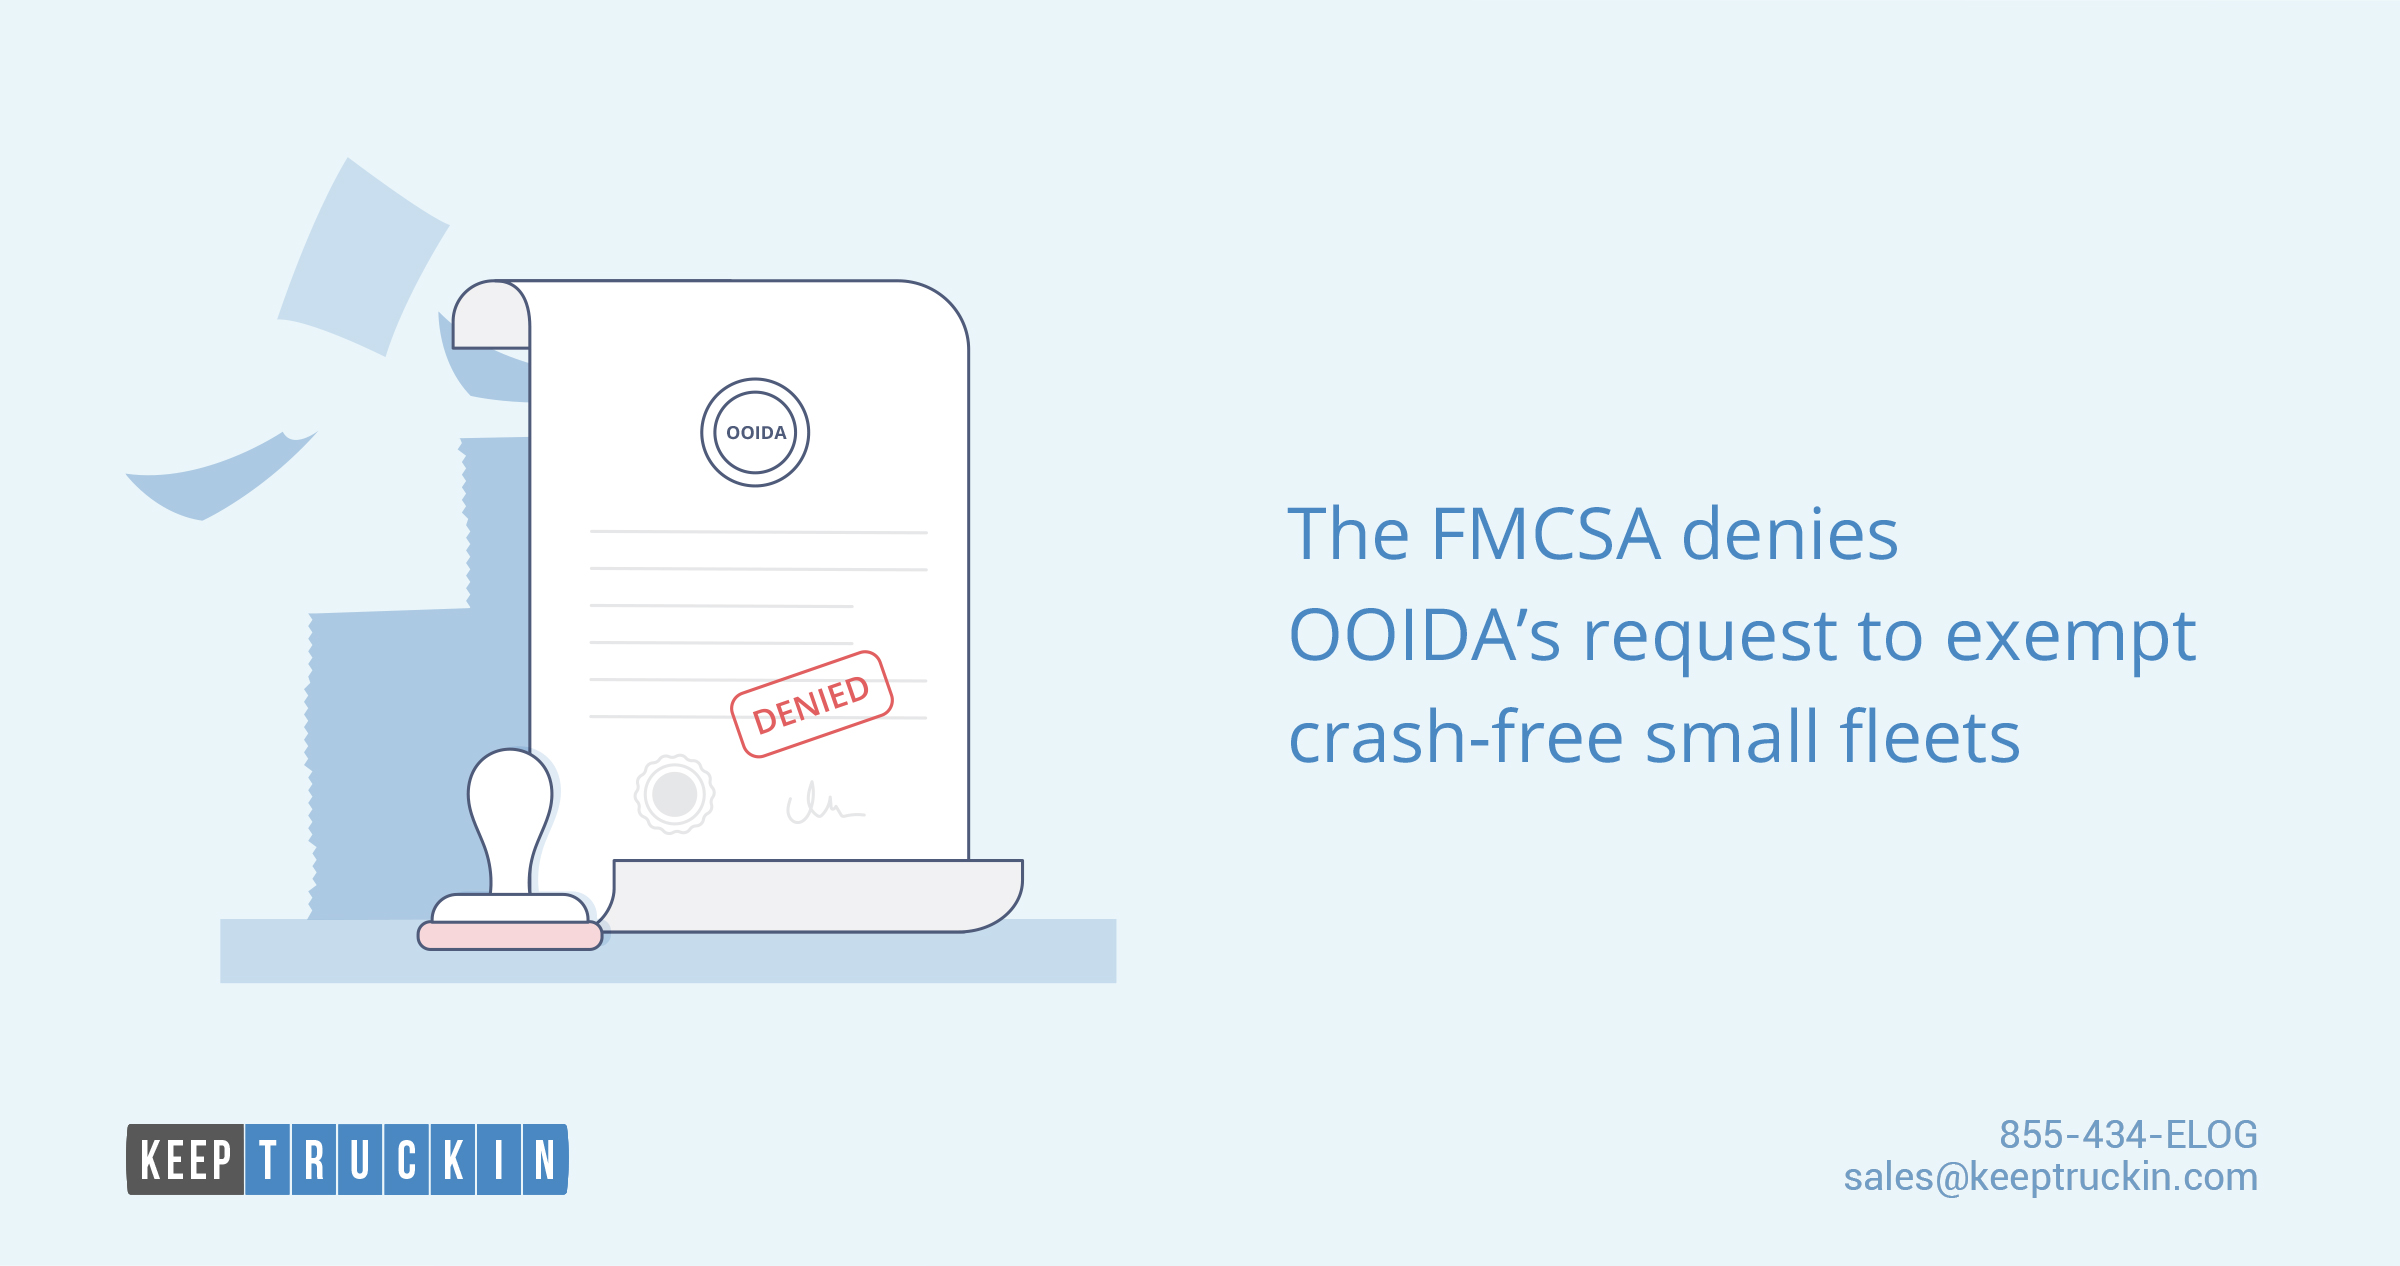 The FMCSA denies OOIDA's request to exempt crash-free small fleets